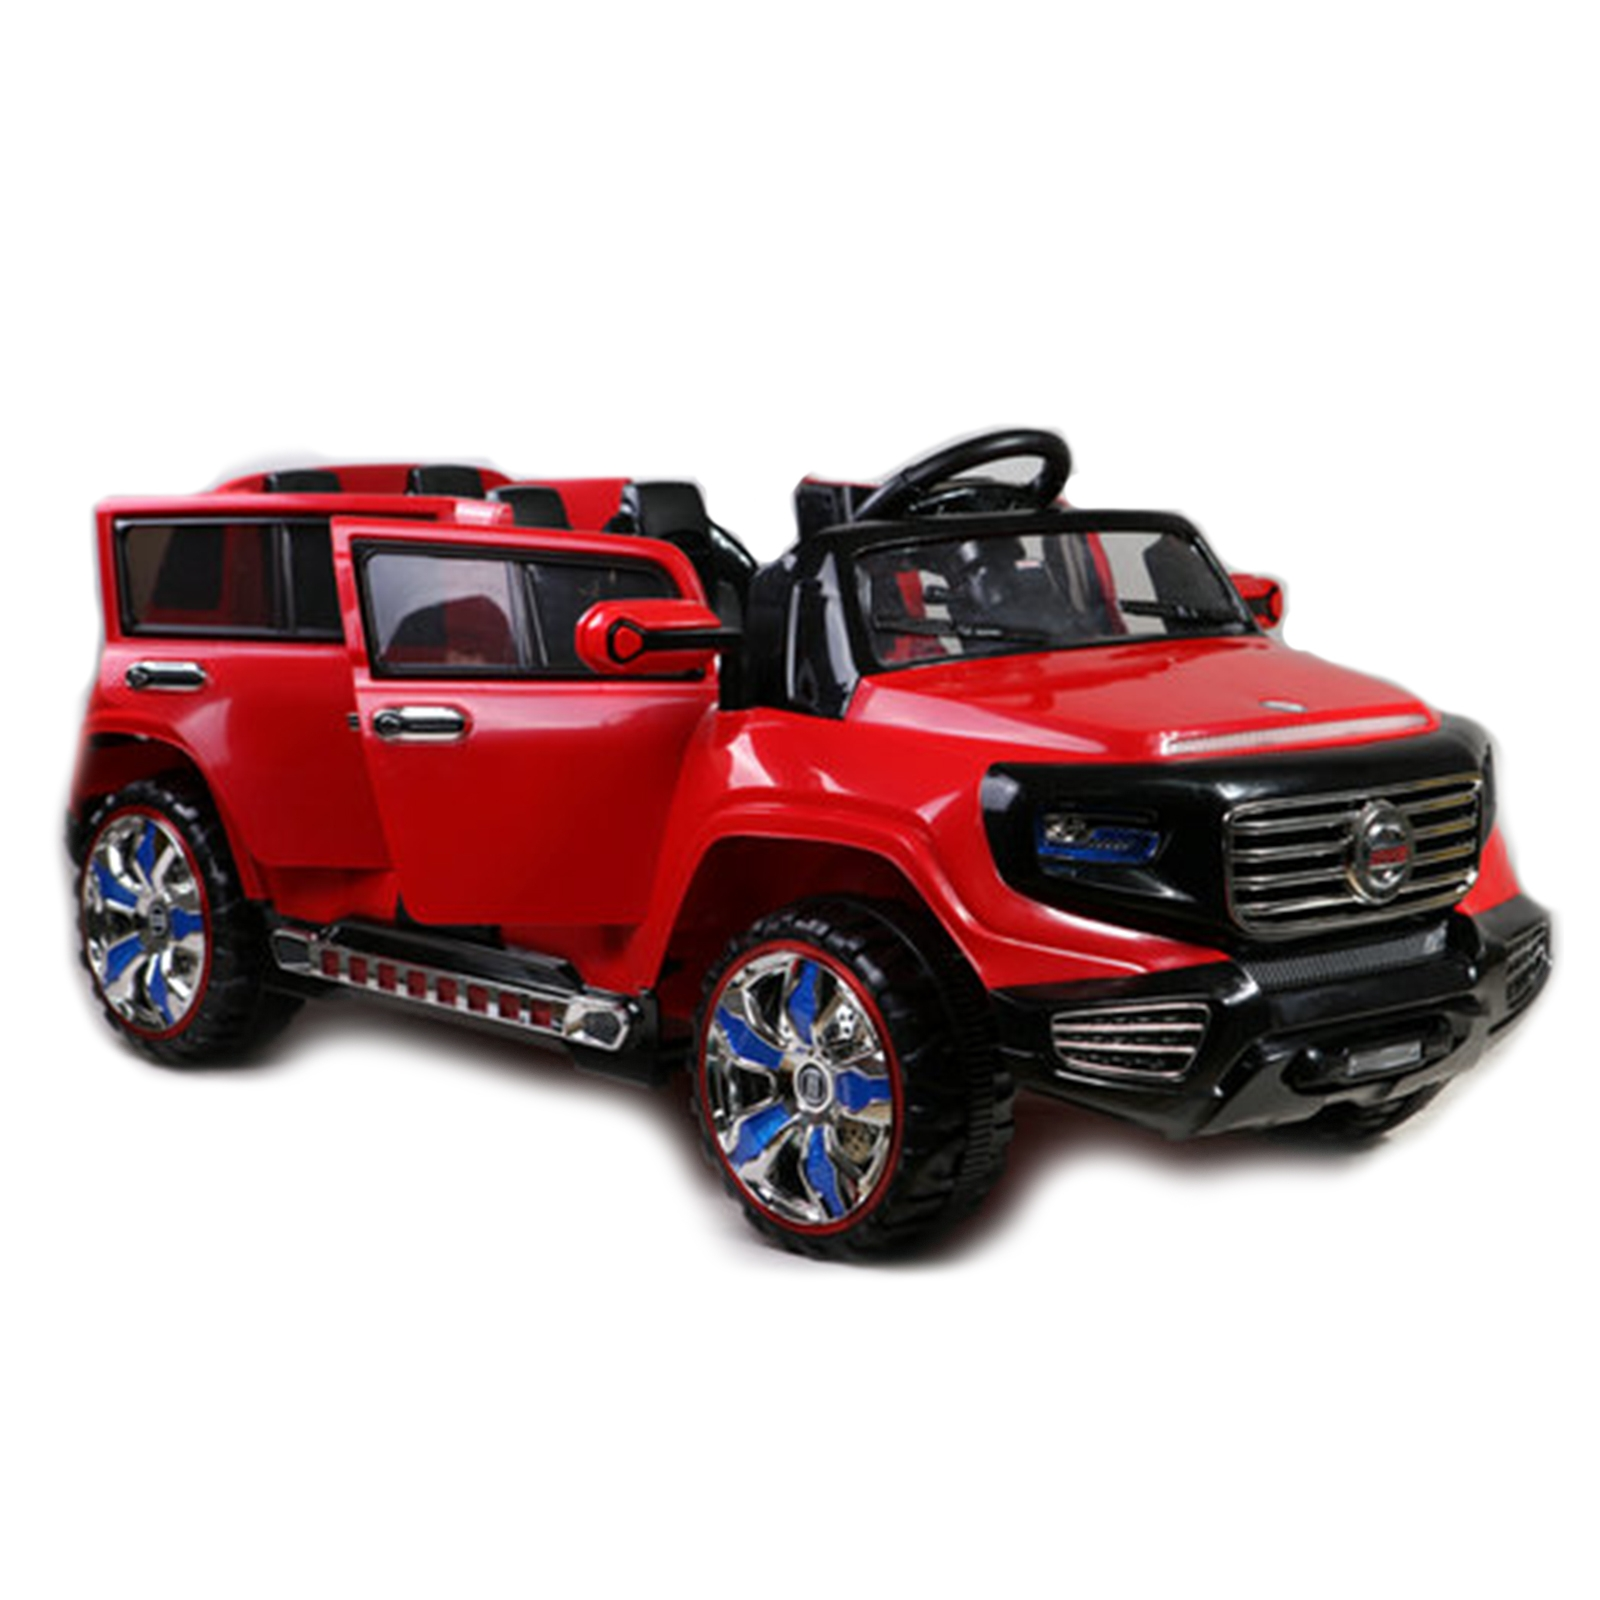 2 seater suv sx 1528 12v kids battery powered ride on car in red